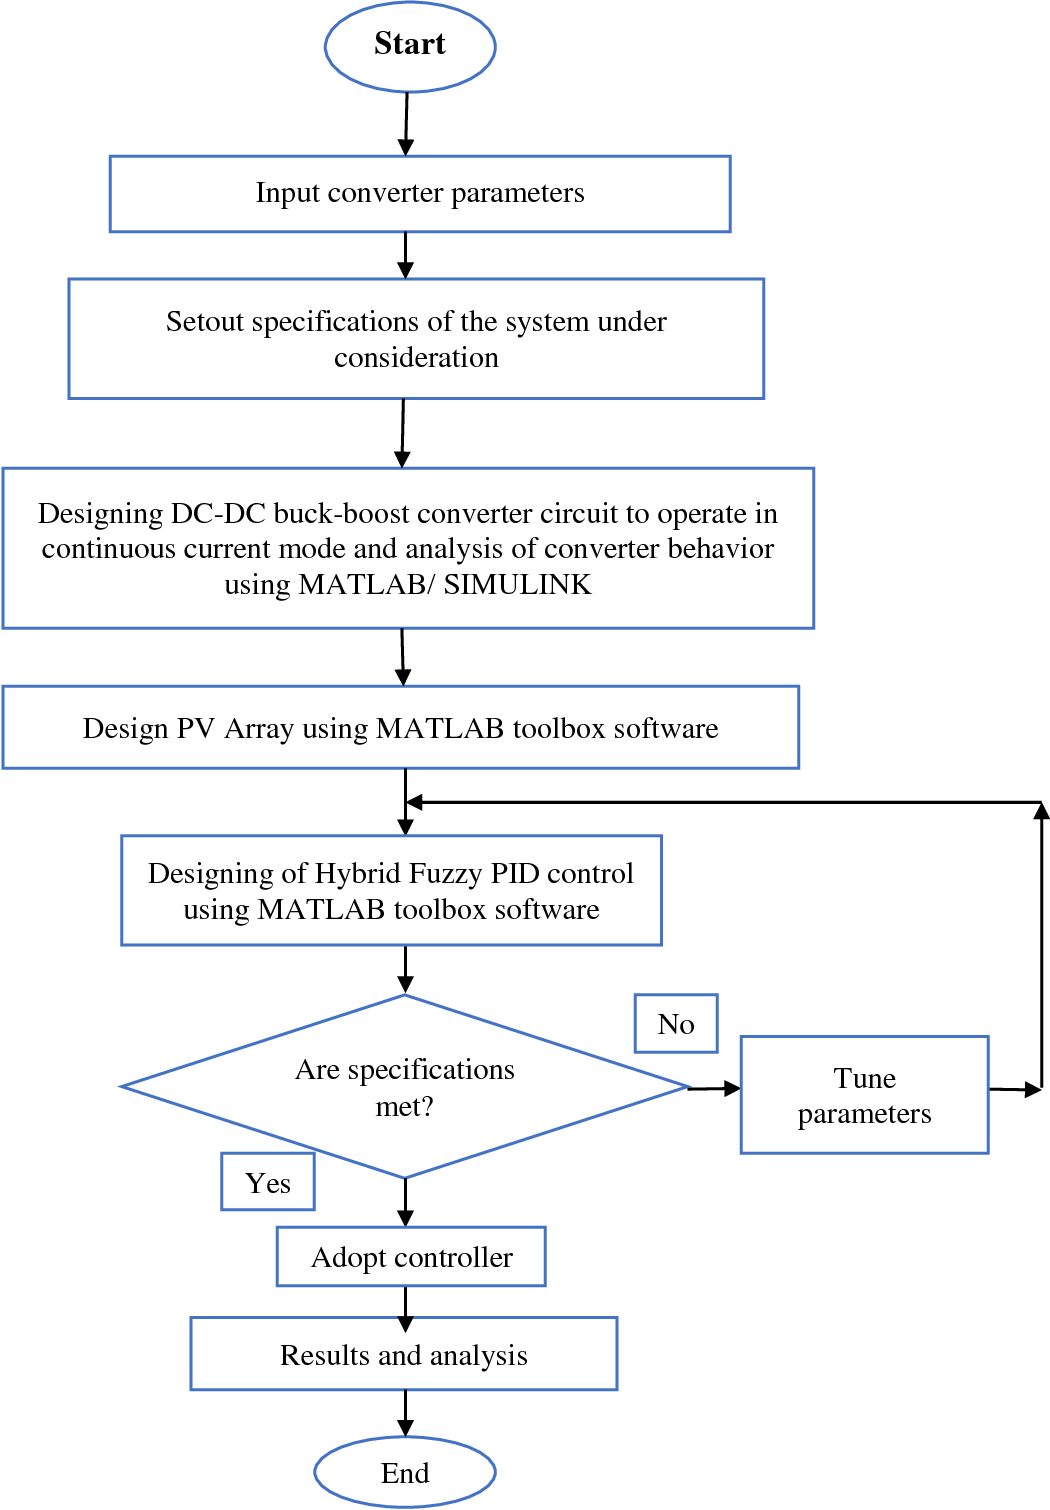 Figure 210 From Hybrid Fuzzy Pid Controller For Buck Boost Fig 2 Converter Circuit 3 In Solar Energy Battery Systems Semantic Scholar